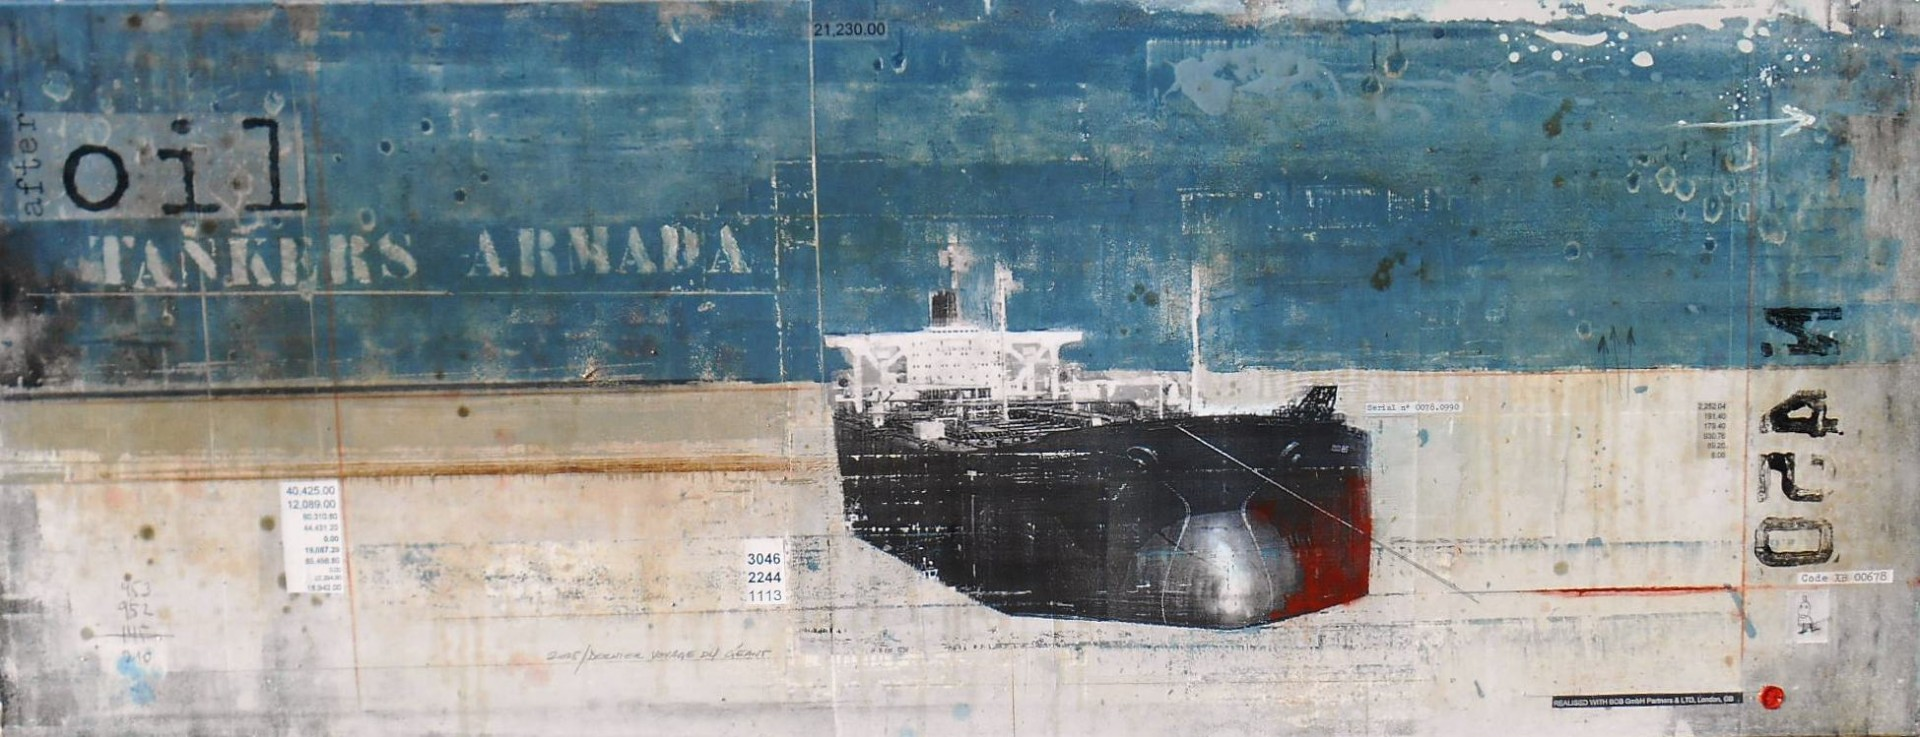 After Oil - Tankers Armada - collage photo, huile, acrylique sur toile - 70 x 180 cm - 2014